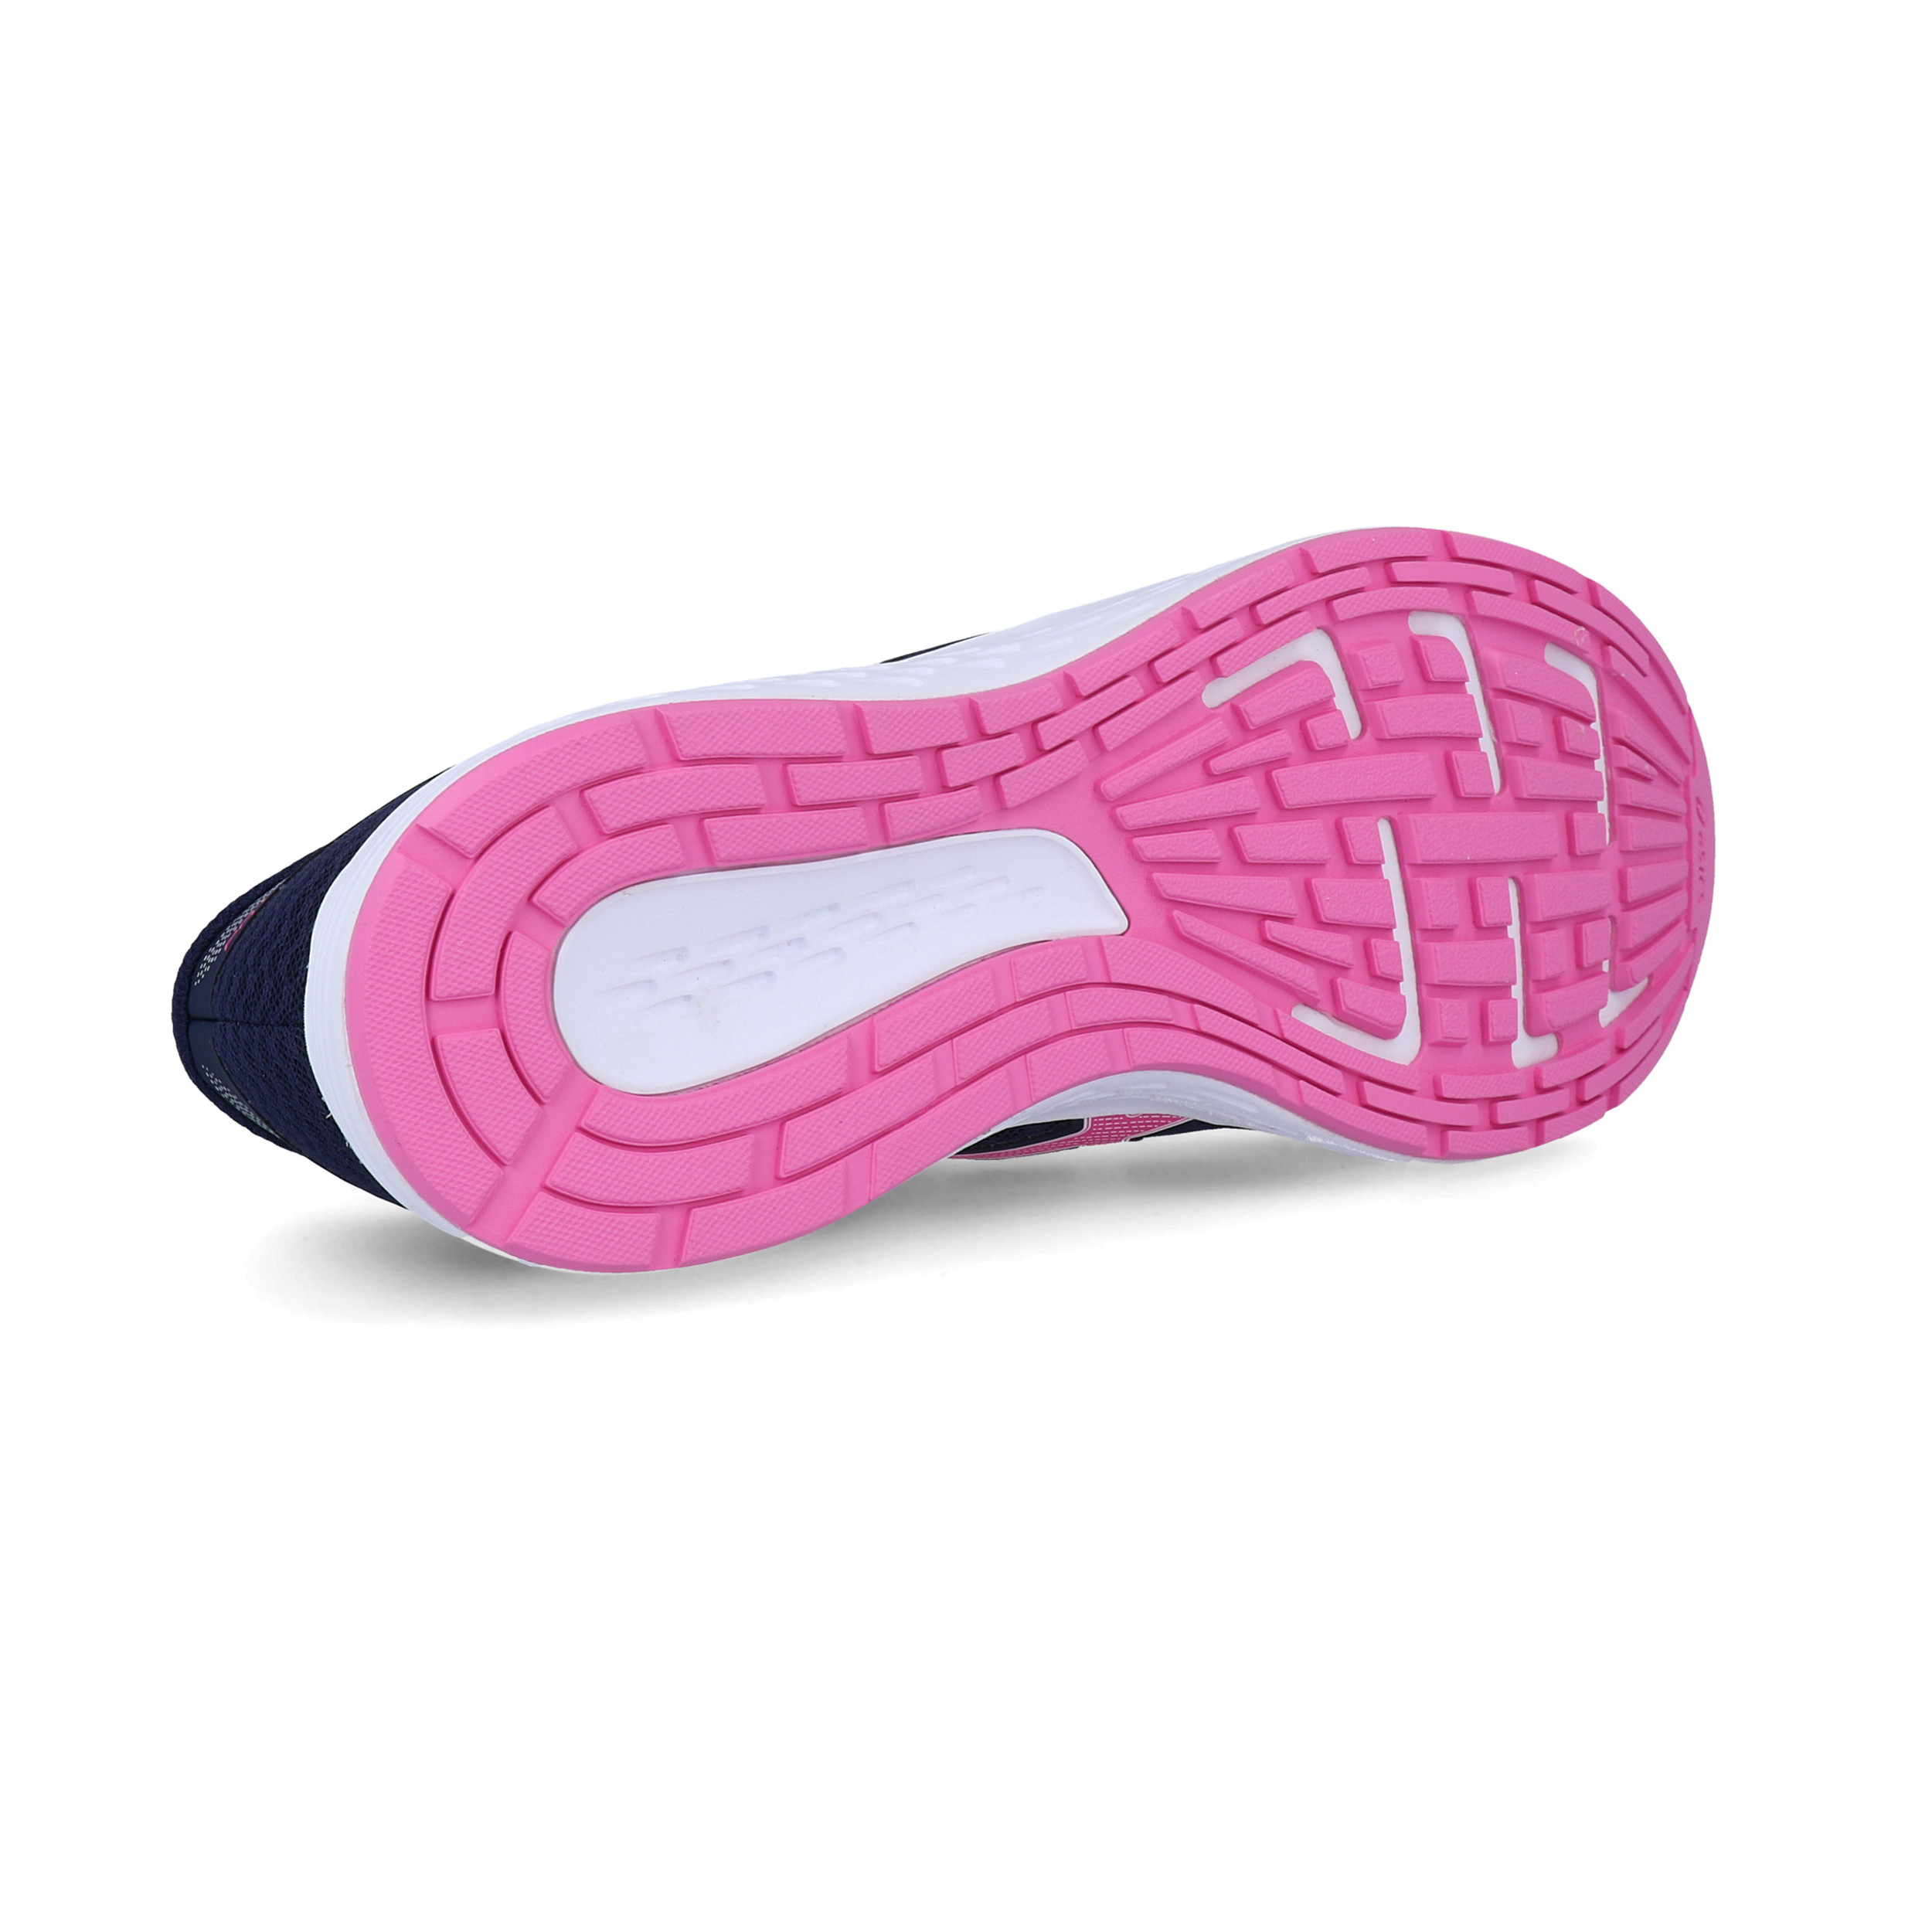 Pink Purple Sports Breathable Asics Womens Patriot 11 Running Shoes Trainers